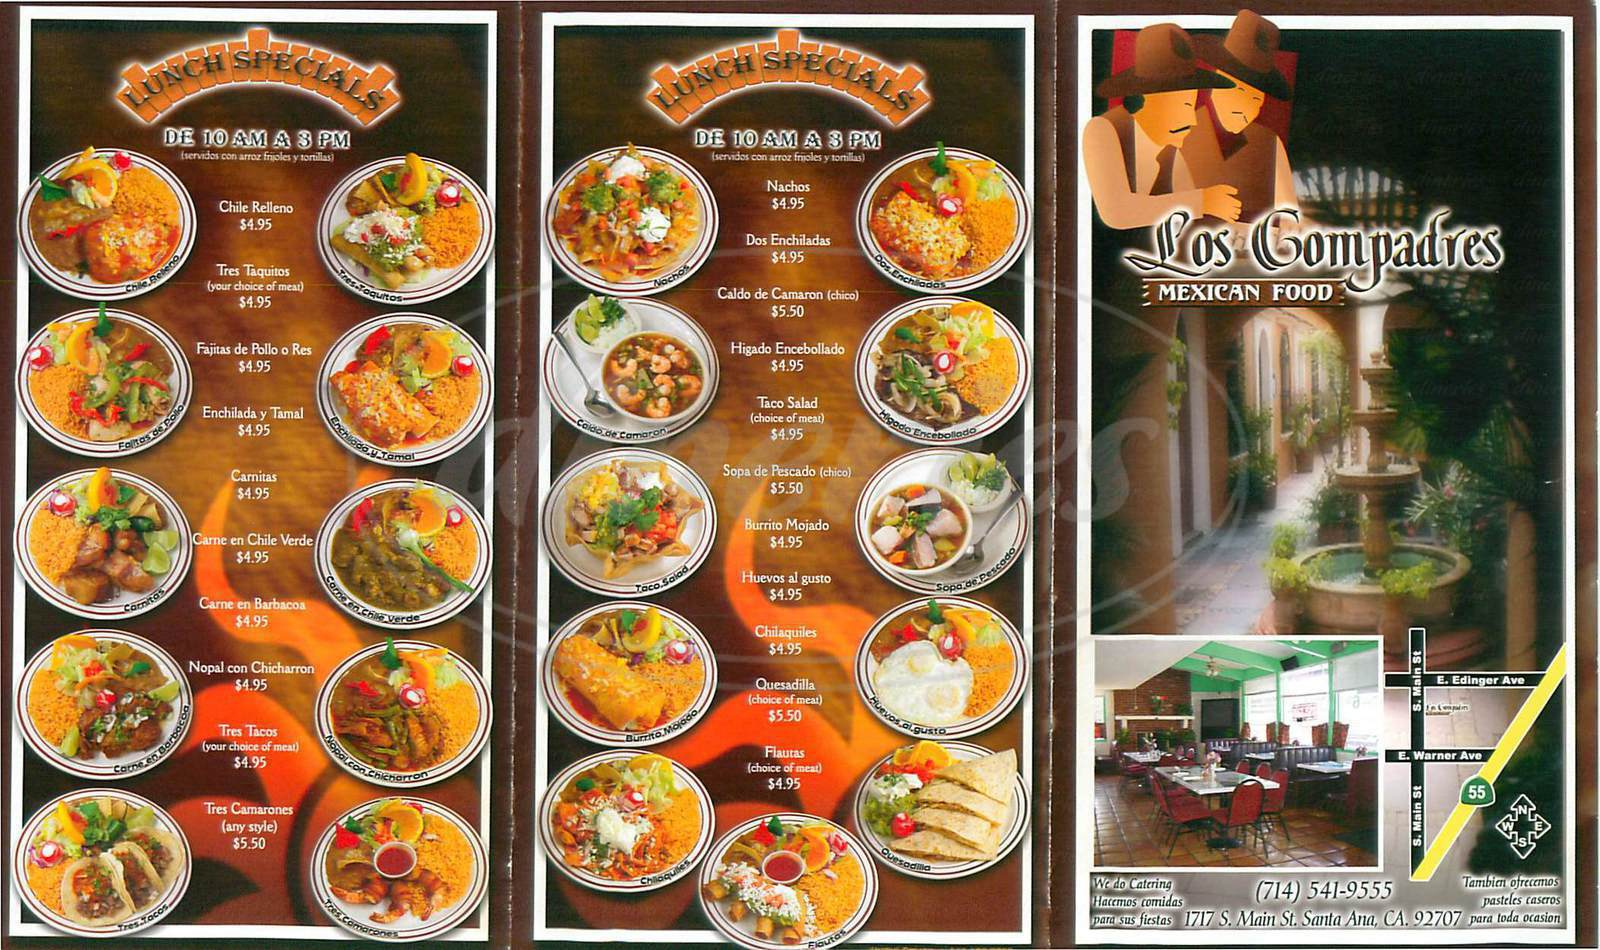 menu for Los Compadres Mexican Food